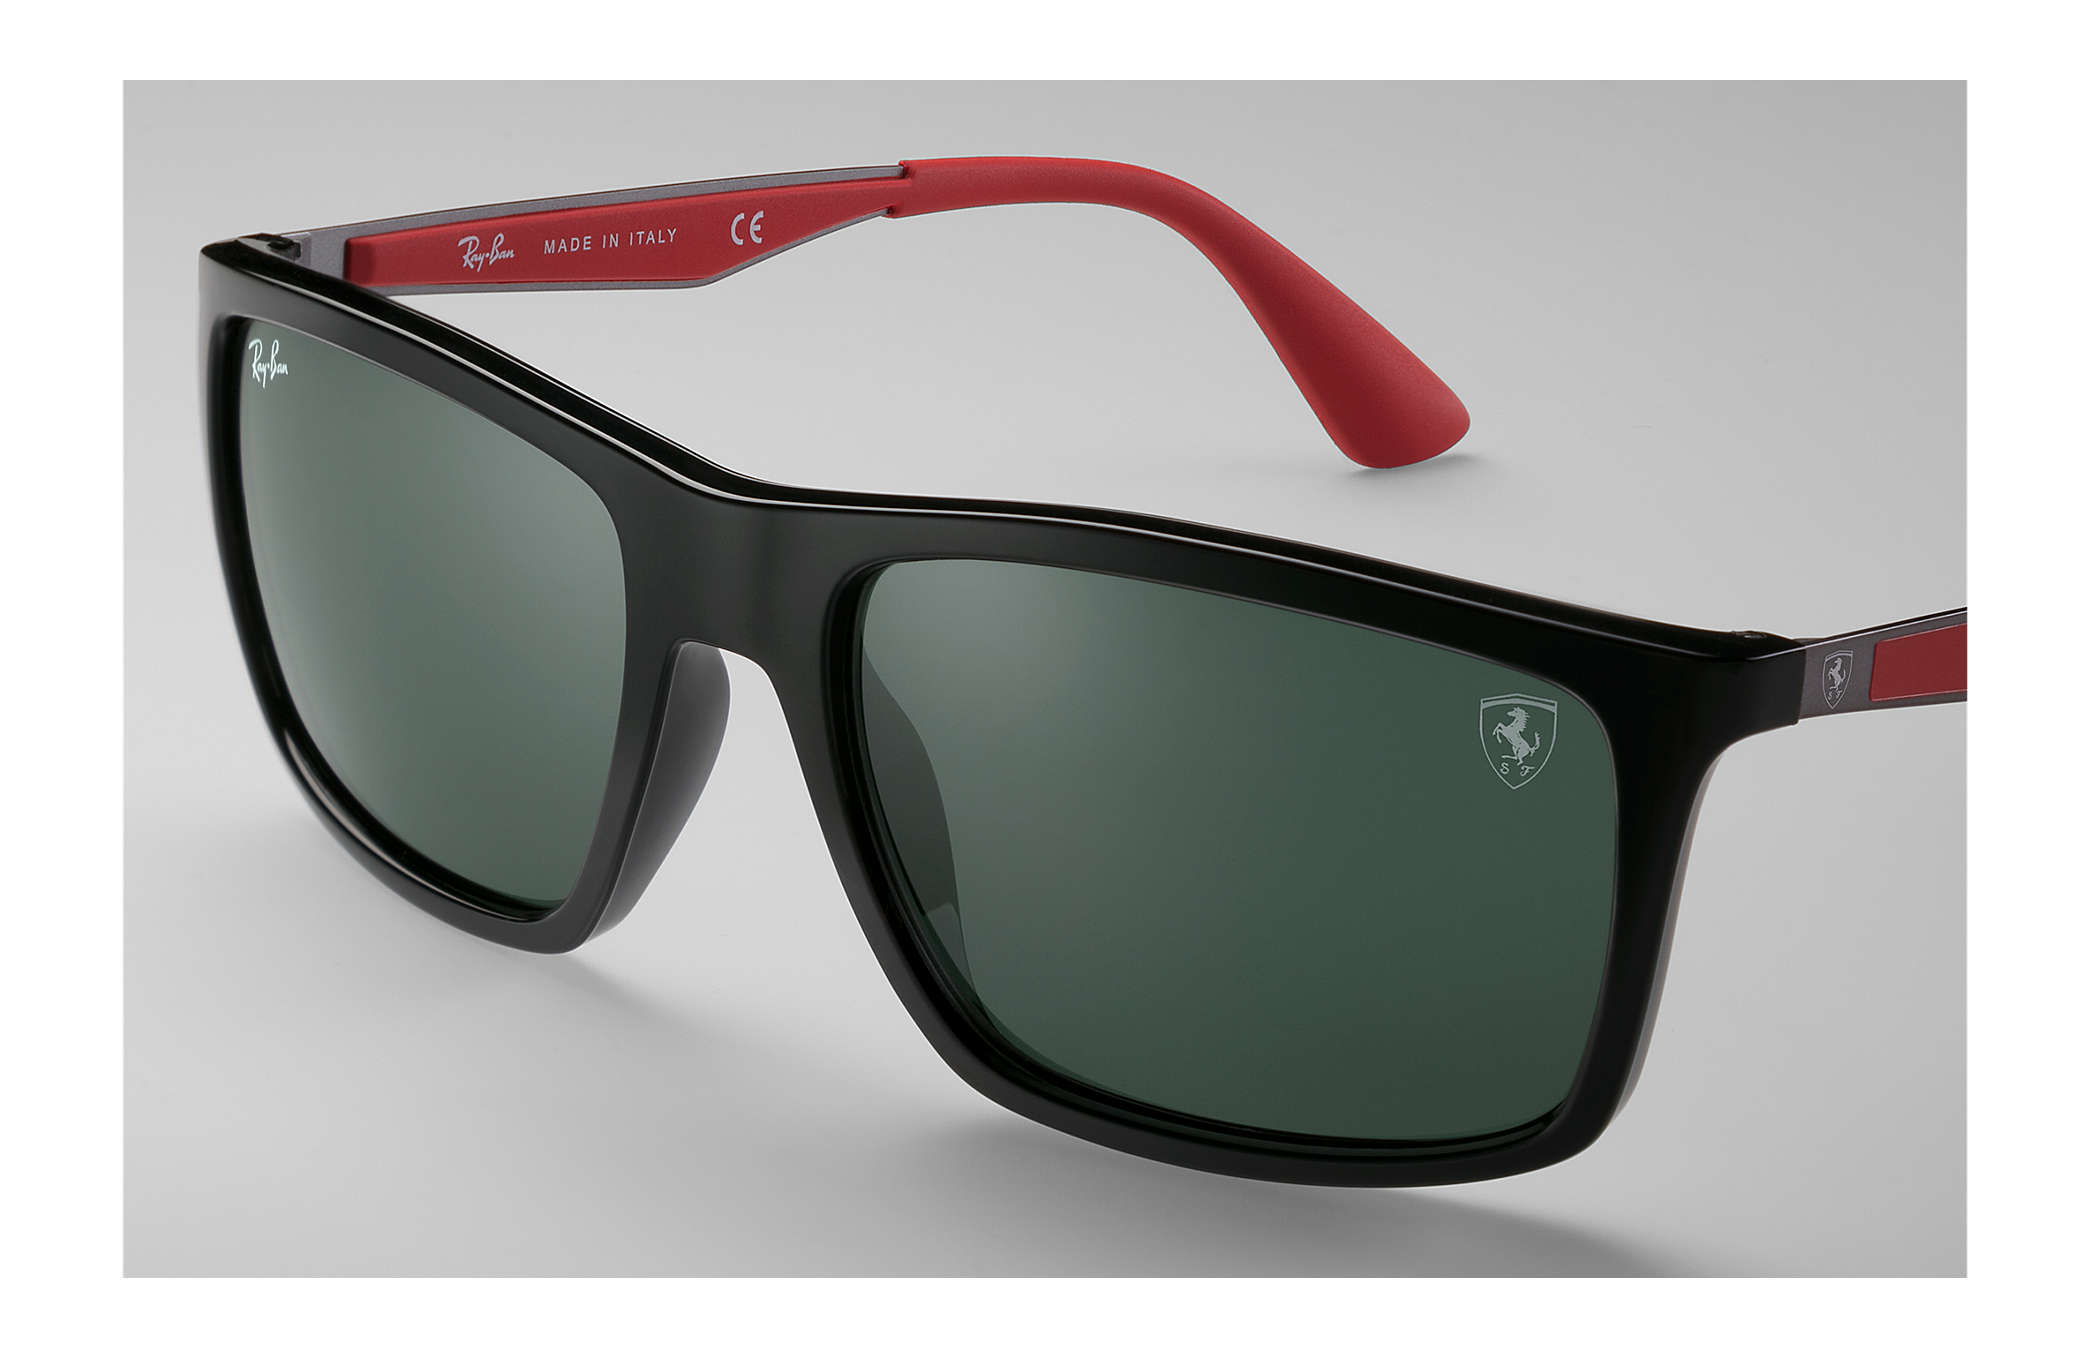 8c94d714fabf ... Ray-Ban 0RB4228M-RB4228M SCUDERIA FERRARI COLLECTION Black;  Gunmetal,Red SUN ...